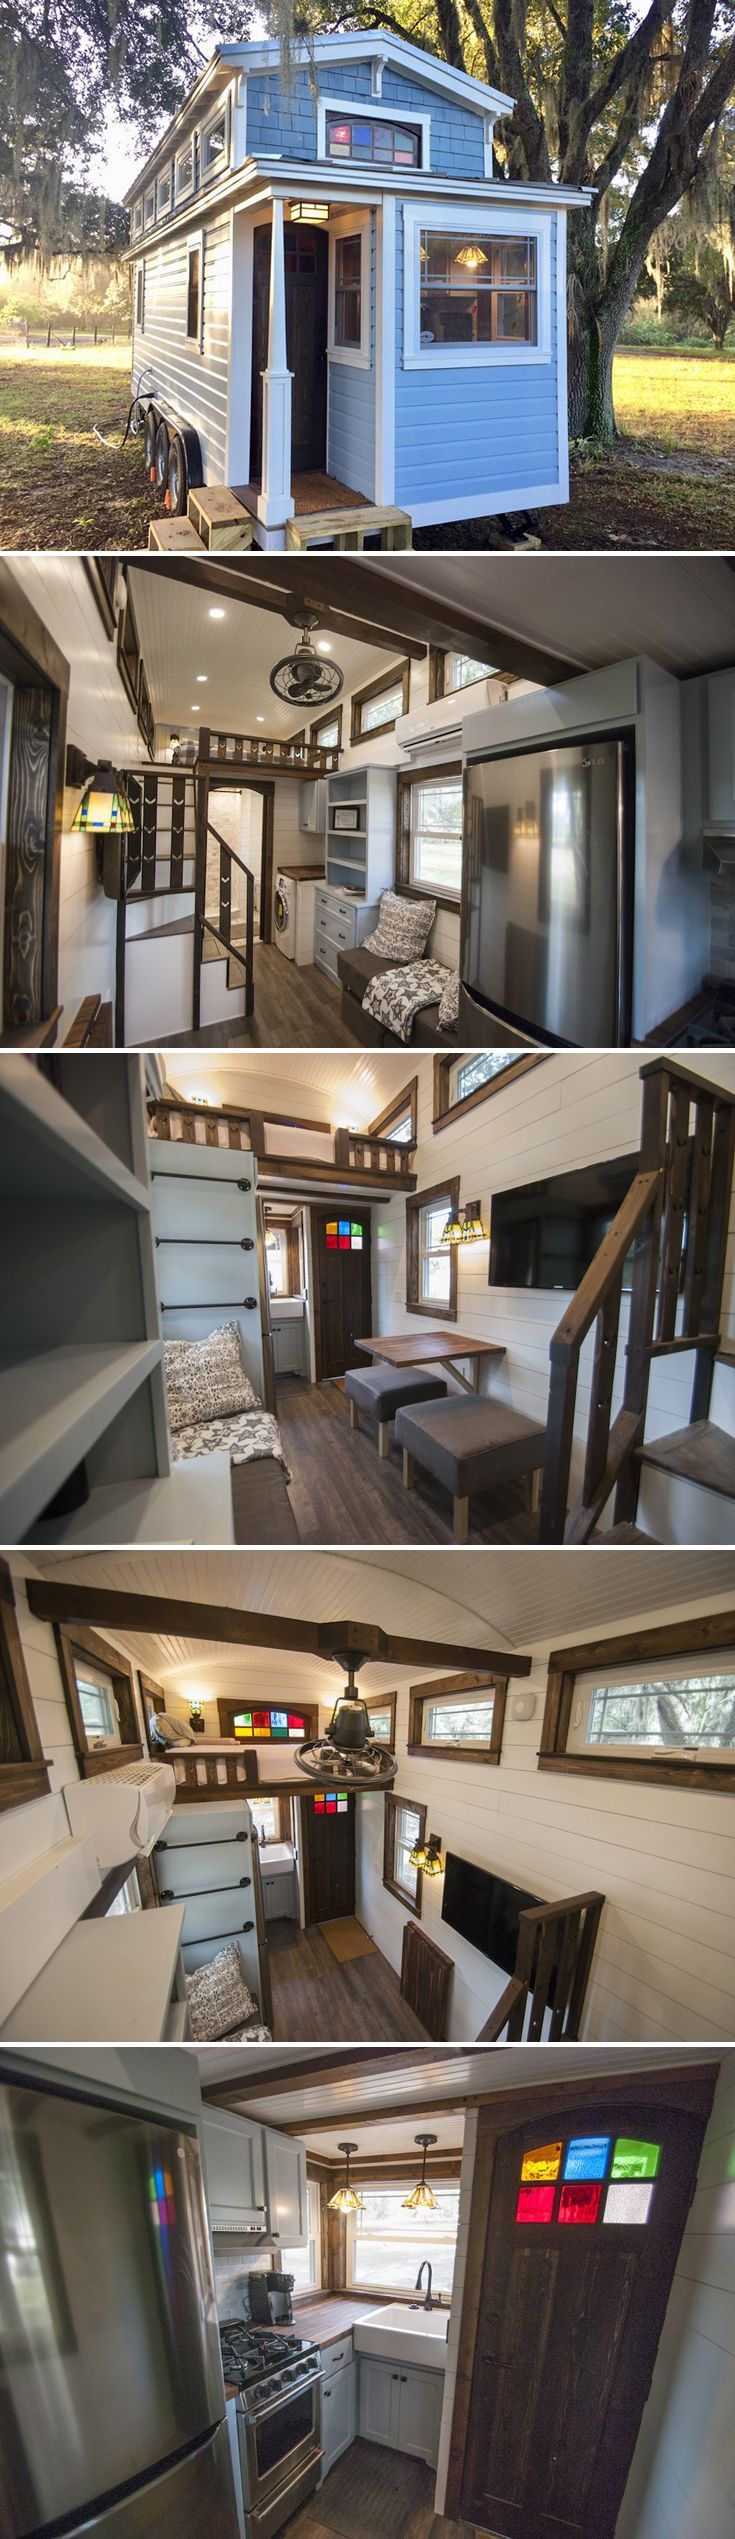 The craftsman-style tiny house features a custom built stained glass front door, barrel ceiling, custom cabinetry throughout, and a reclaimed cedar tub.